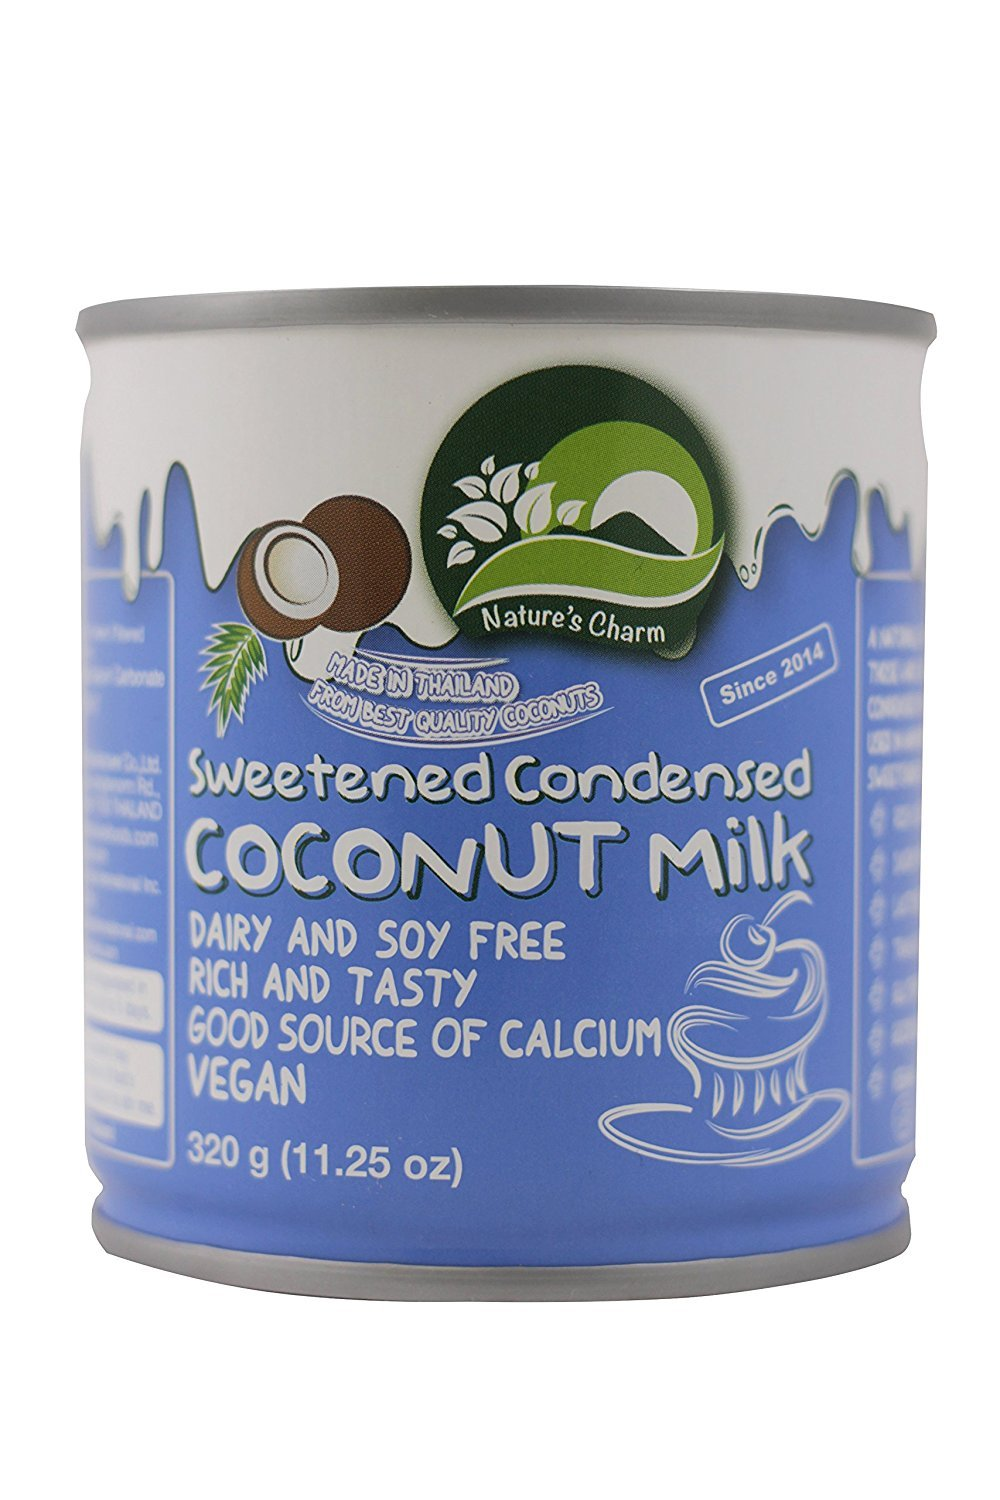 Amazon.com : Natures Charm Sweetned Condensed Coconut Milk, 11.25 Ounce. (Pack of 4) : Grocery & Gourmet Food